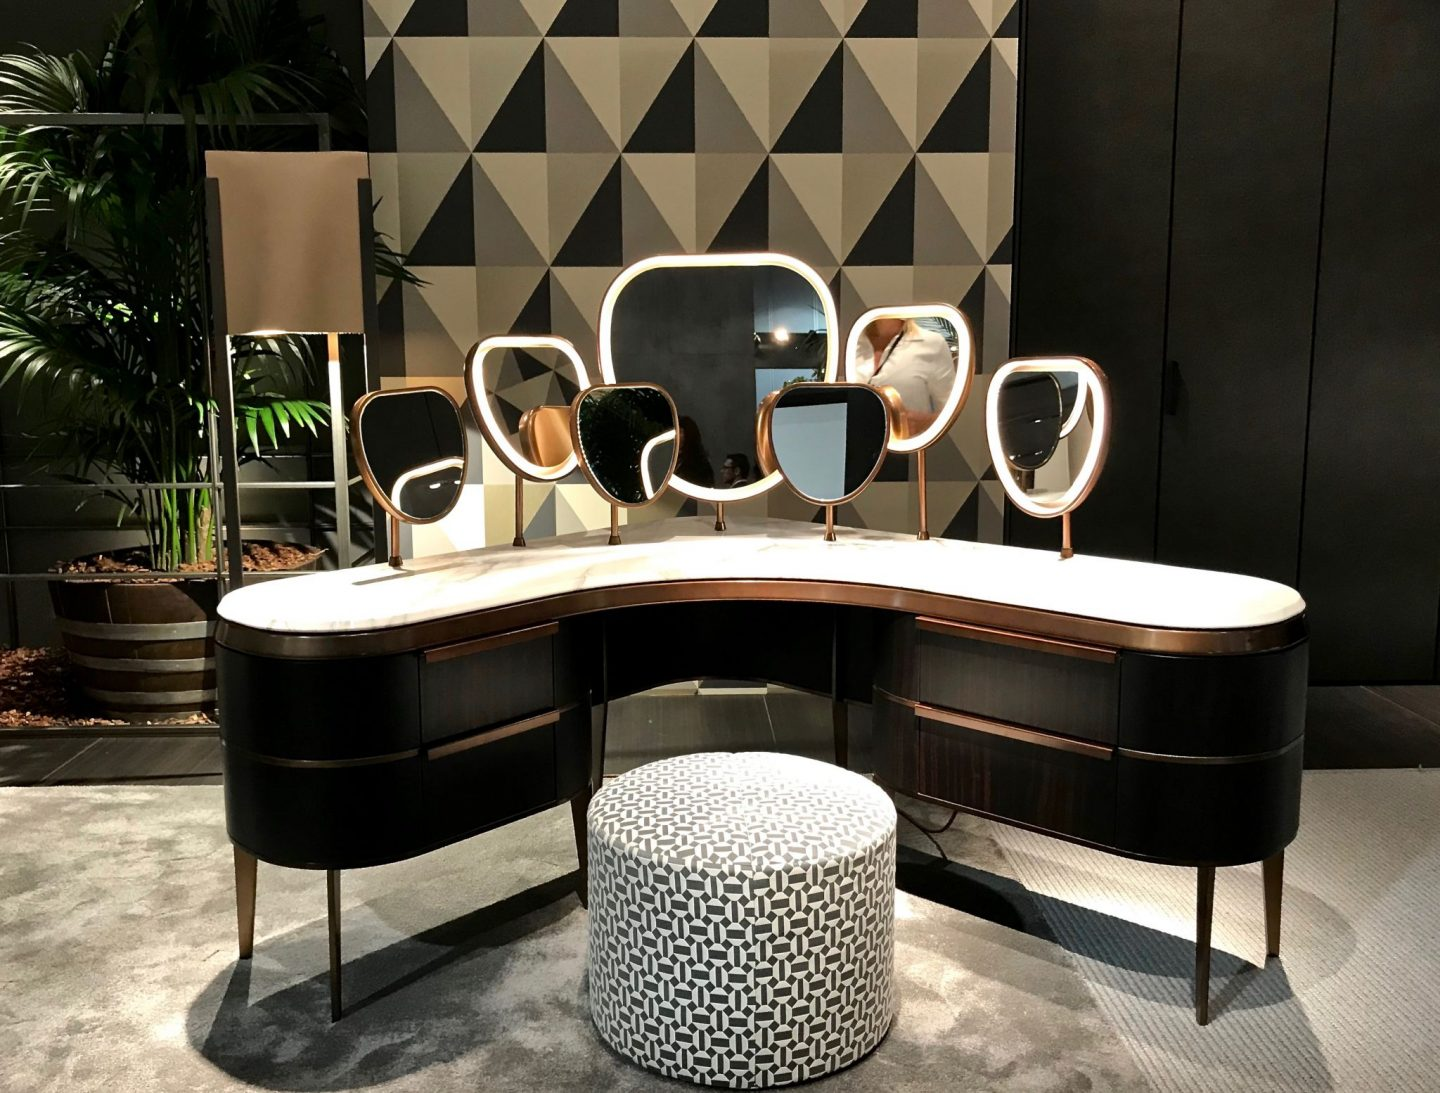 flou, vanity, geometric wallpaper highlights from Salone del Mobile 2018, via hellopeagreen, interior blogger